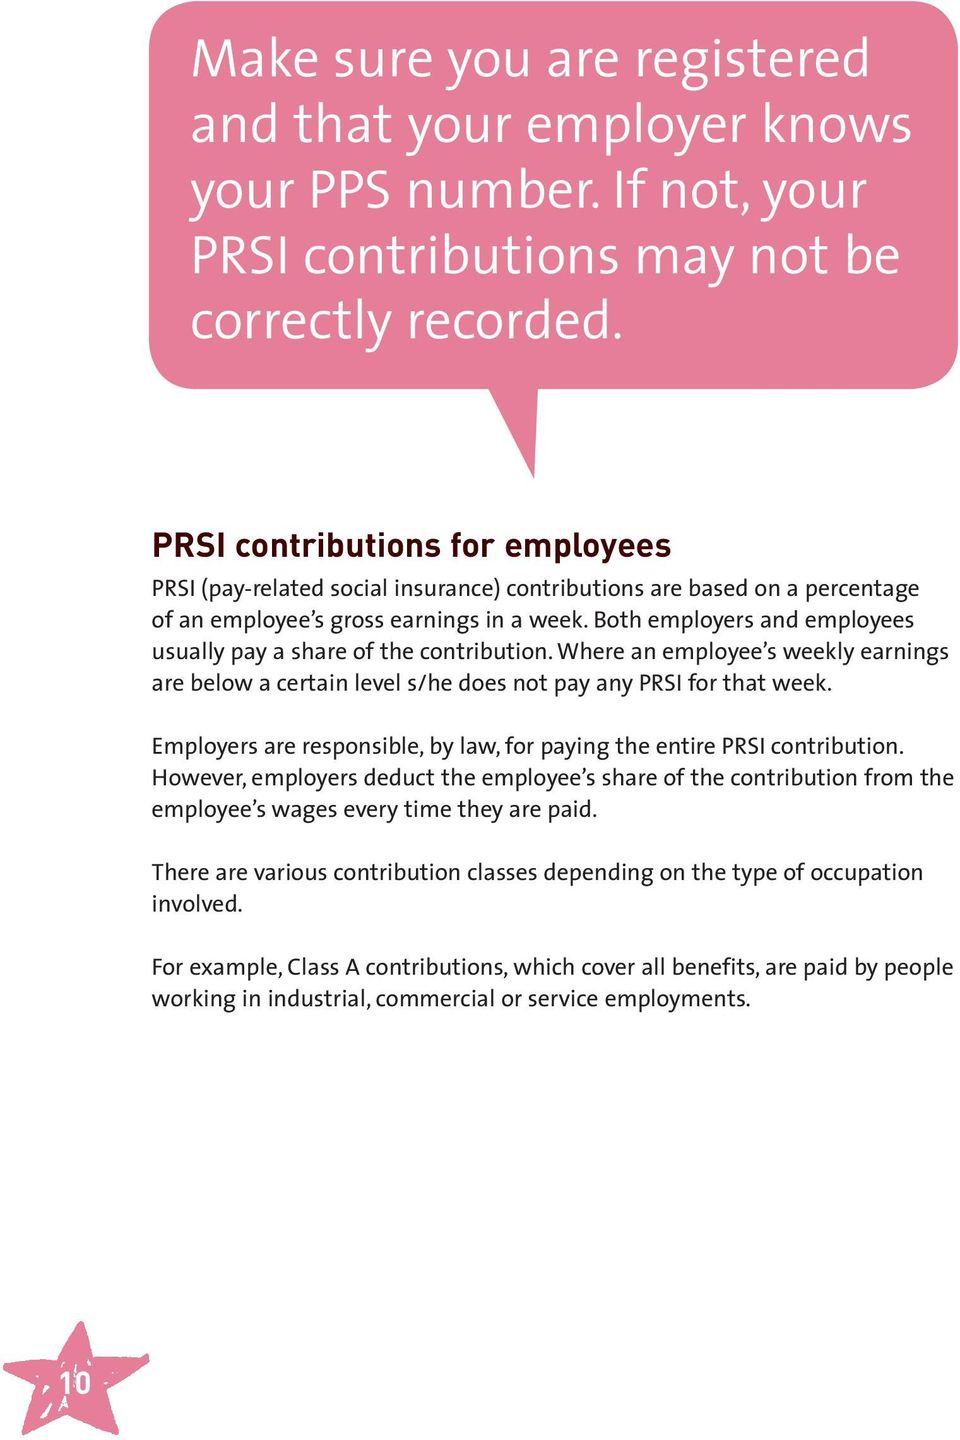 Both employers and employees usually pay a share of the contribution. Where an employee s weekly earnings are below a certain level s/he does not pay any PRSI for that week.